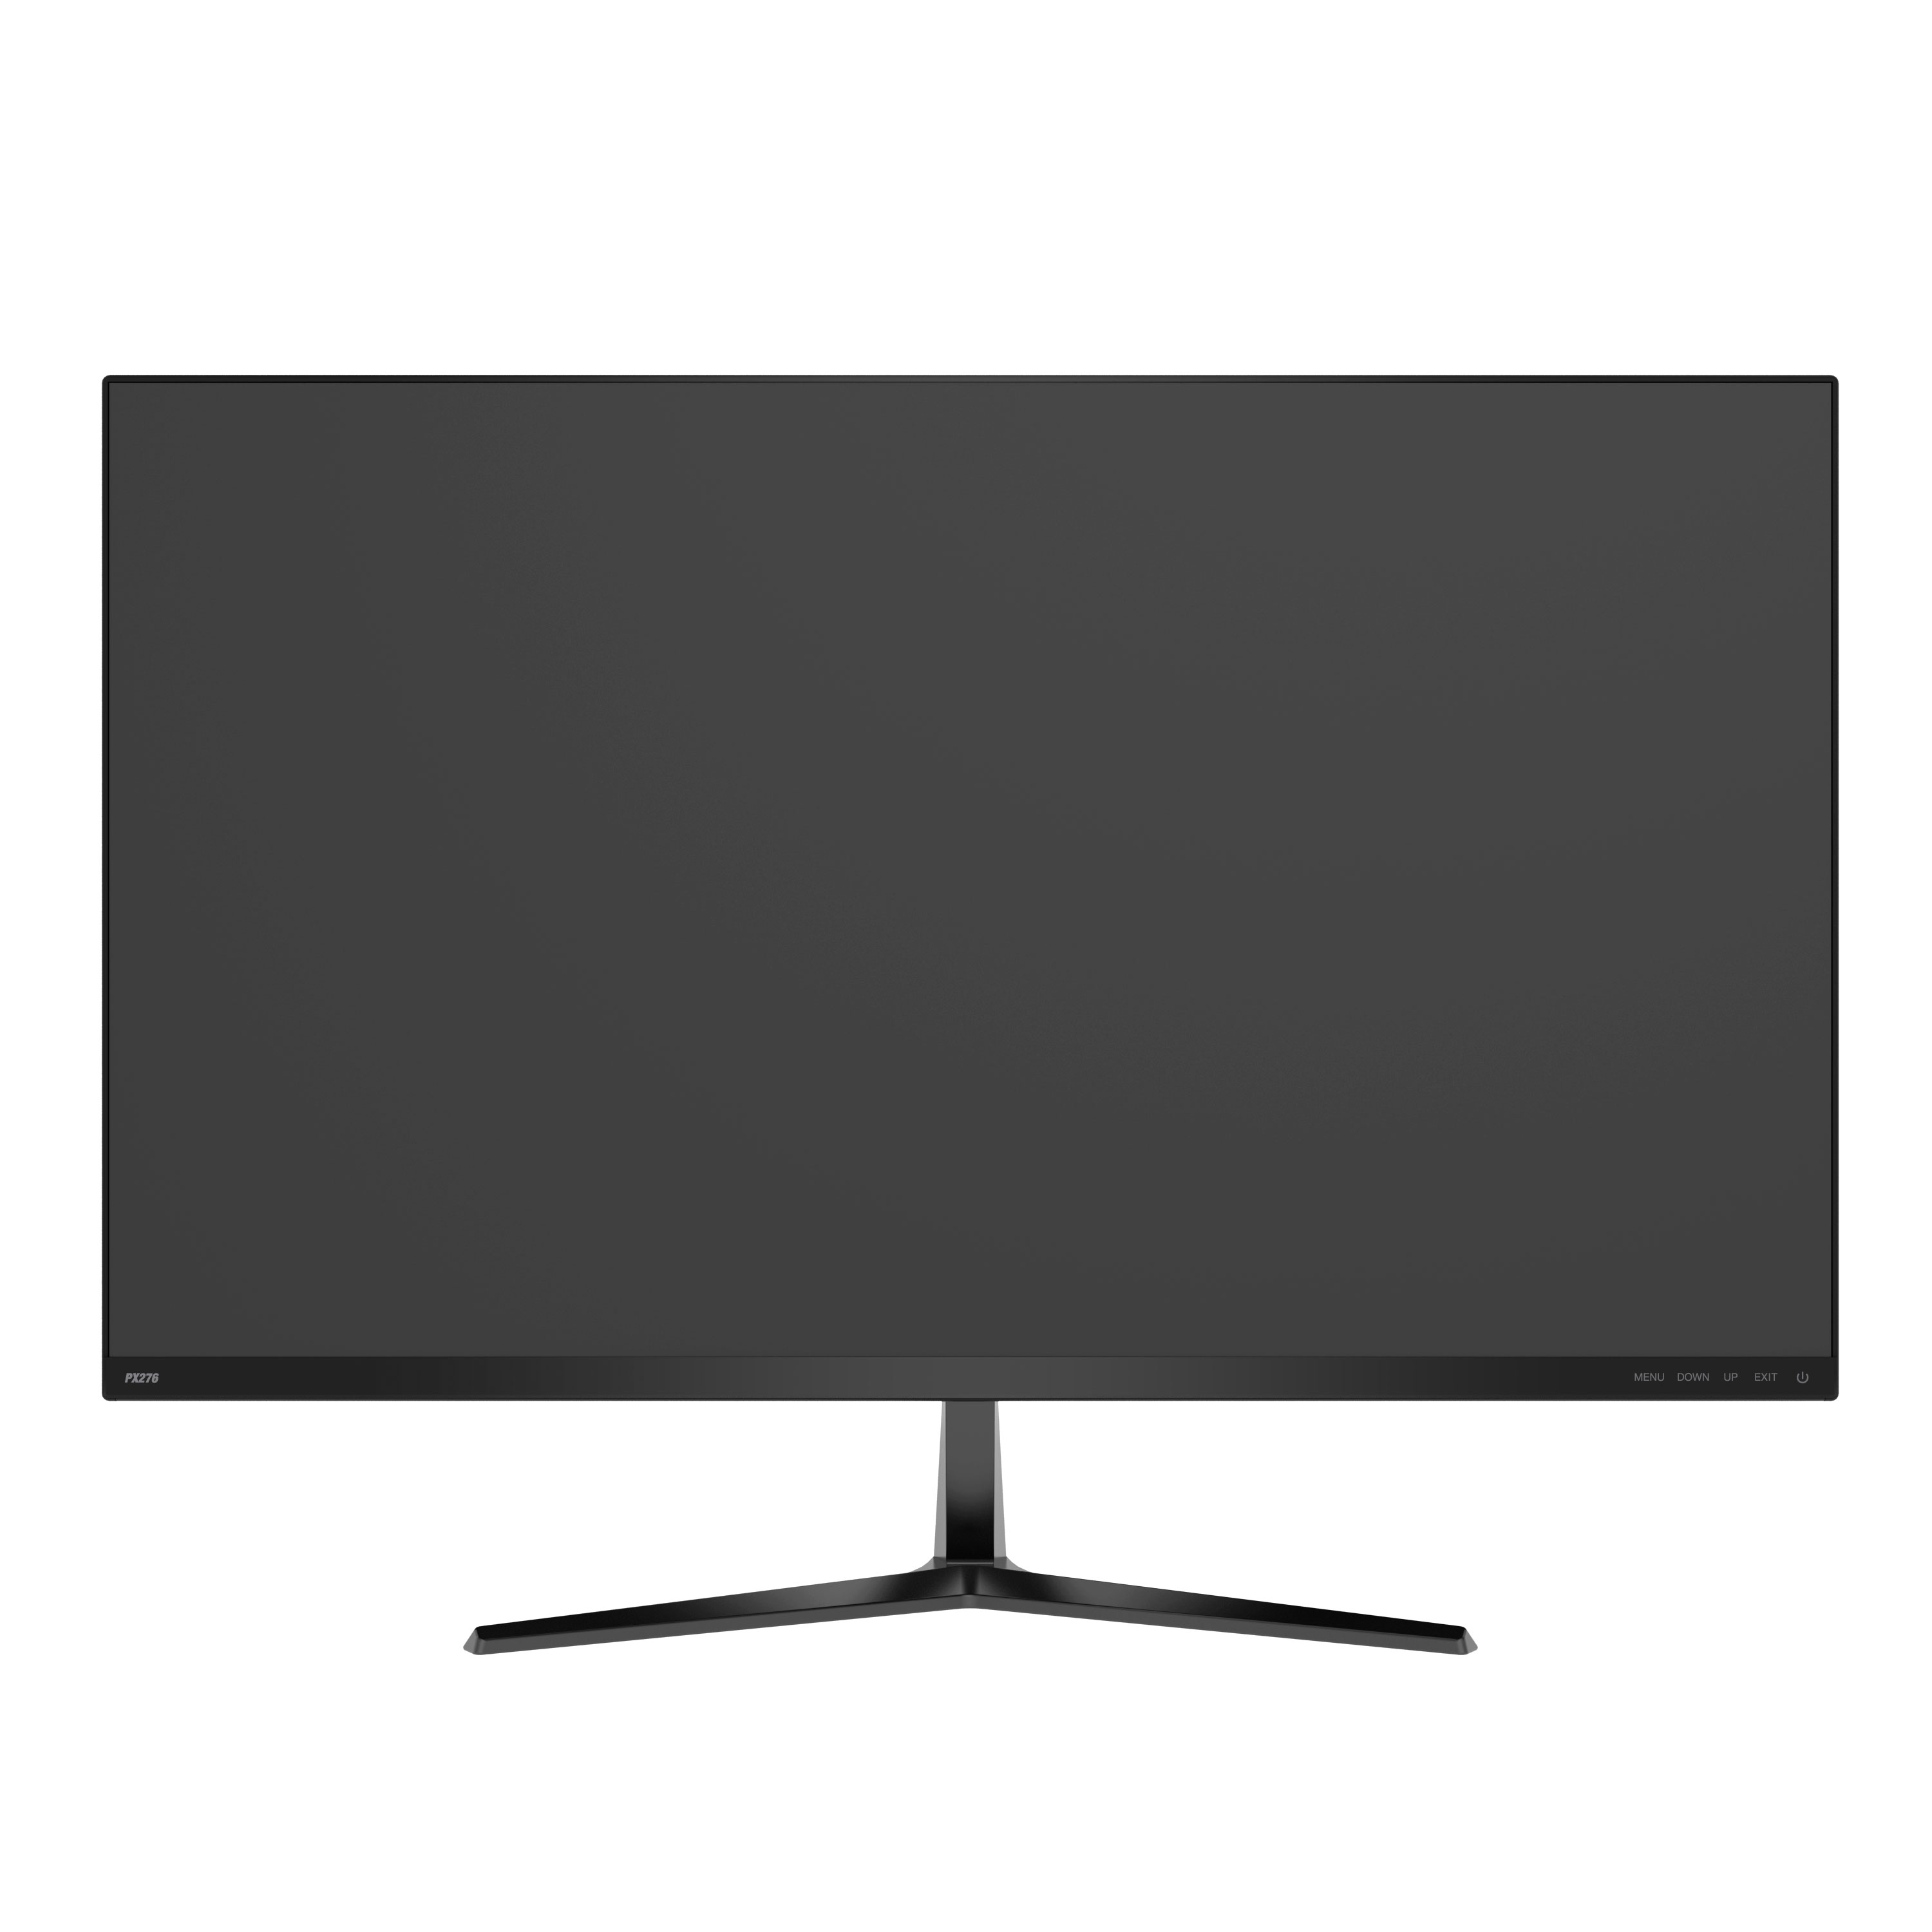 Pixio-Gaming-Monitor-PX276_02